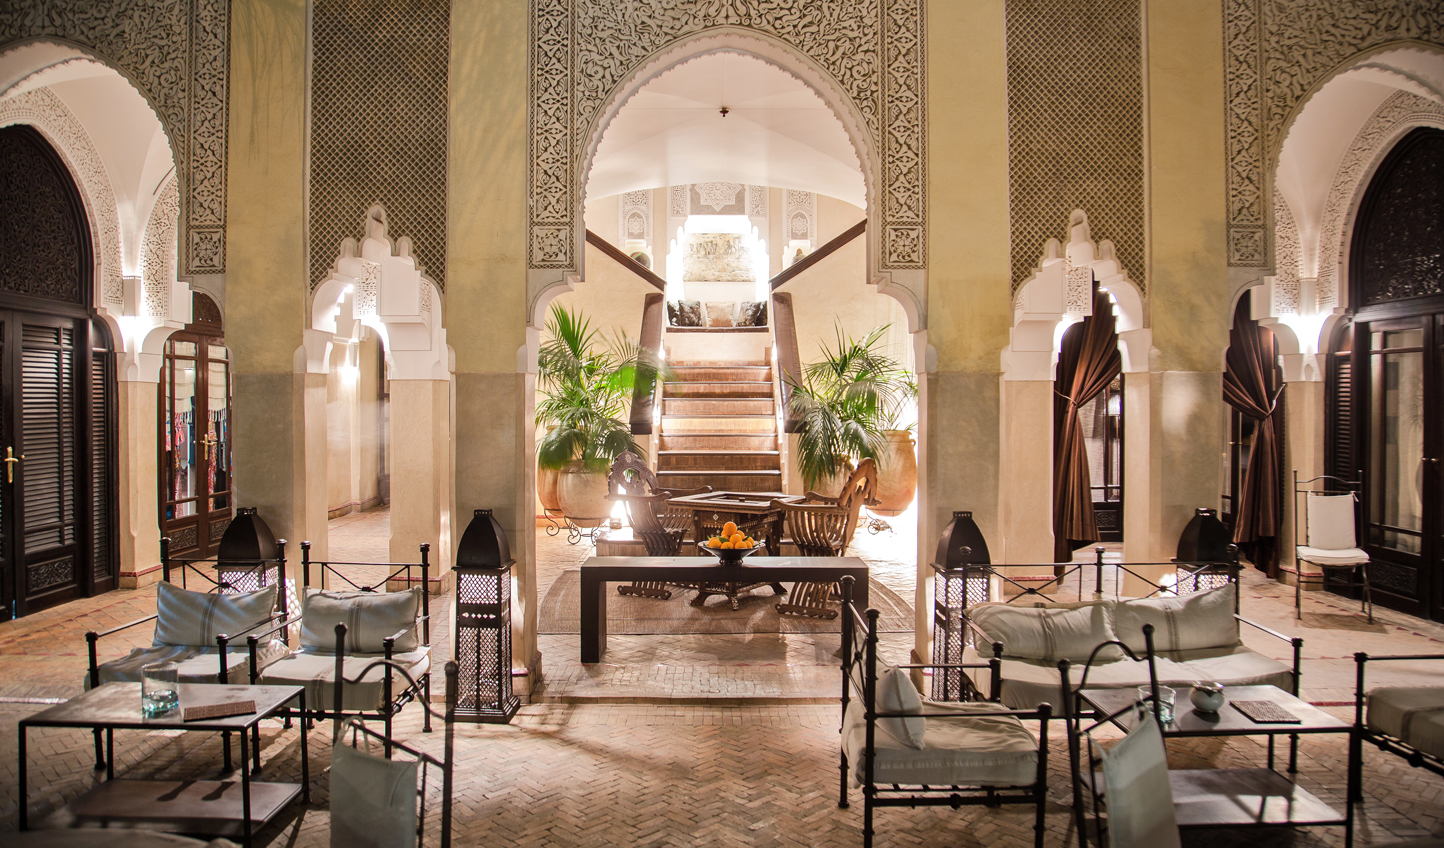 Step into a luxurious Riad in the heart of Marrakech